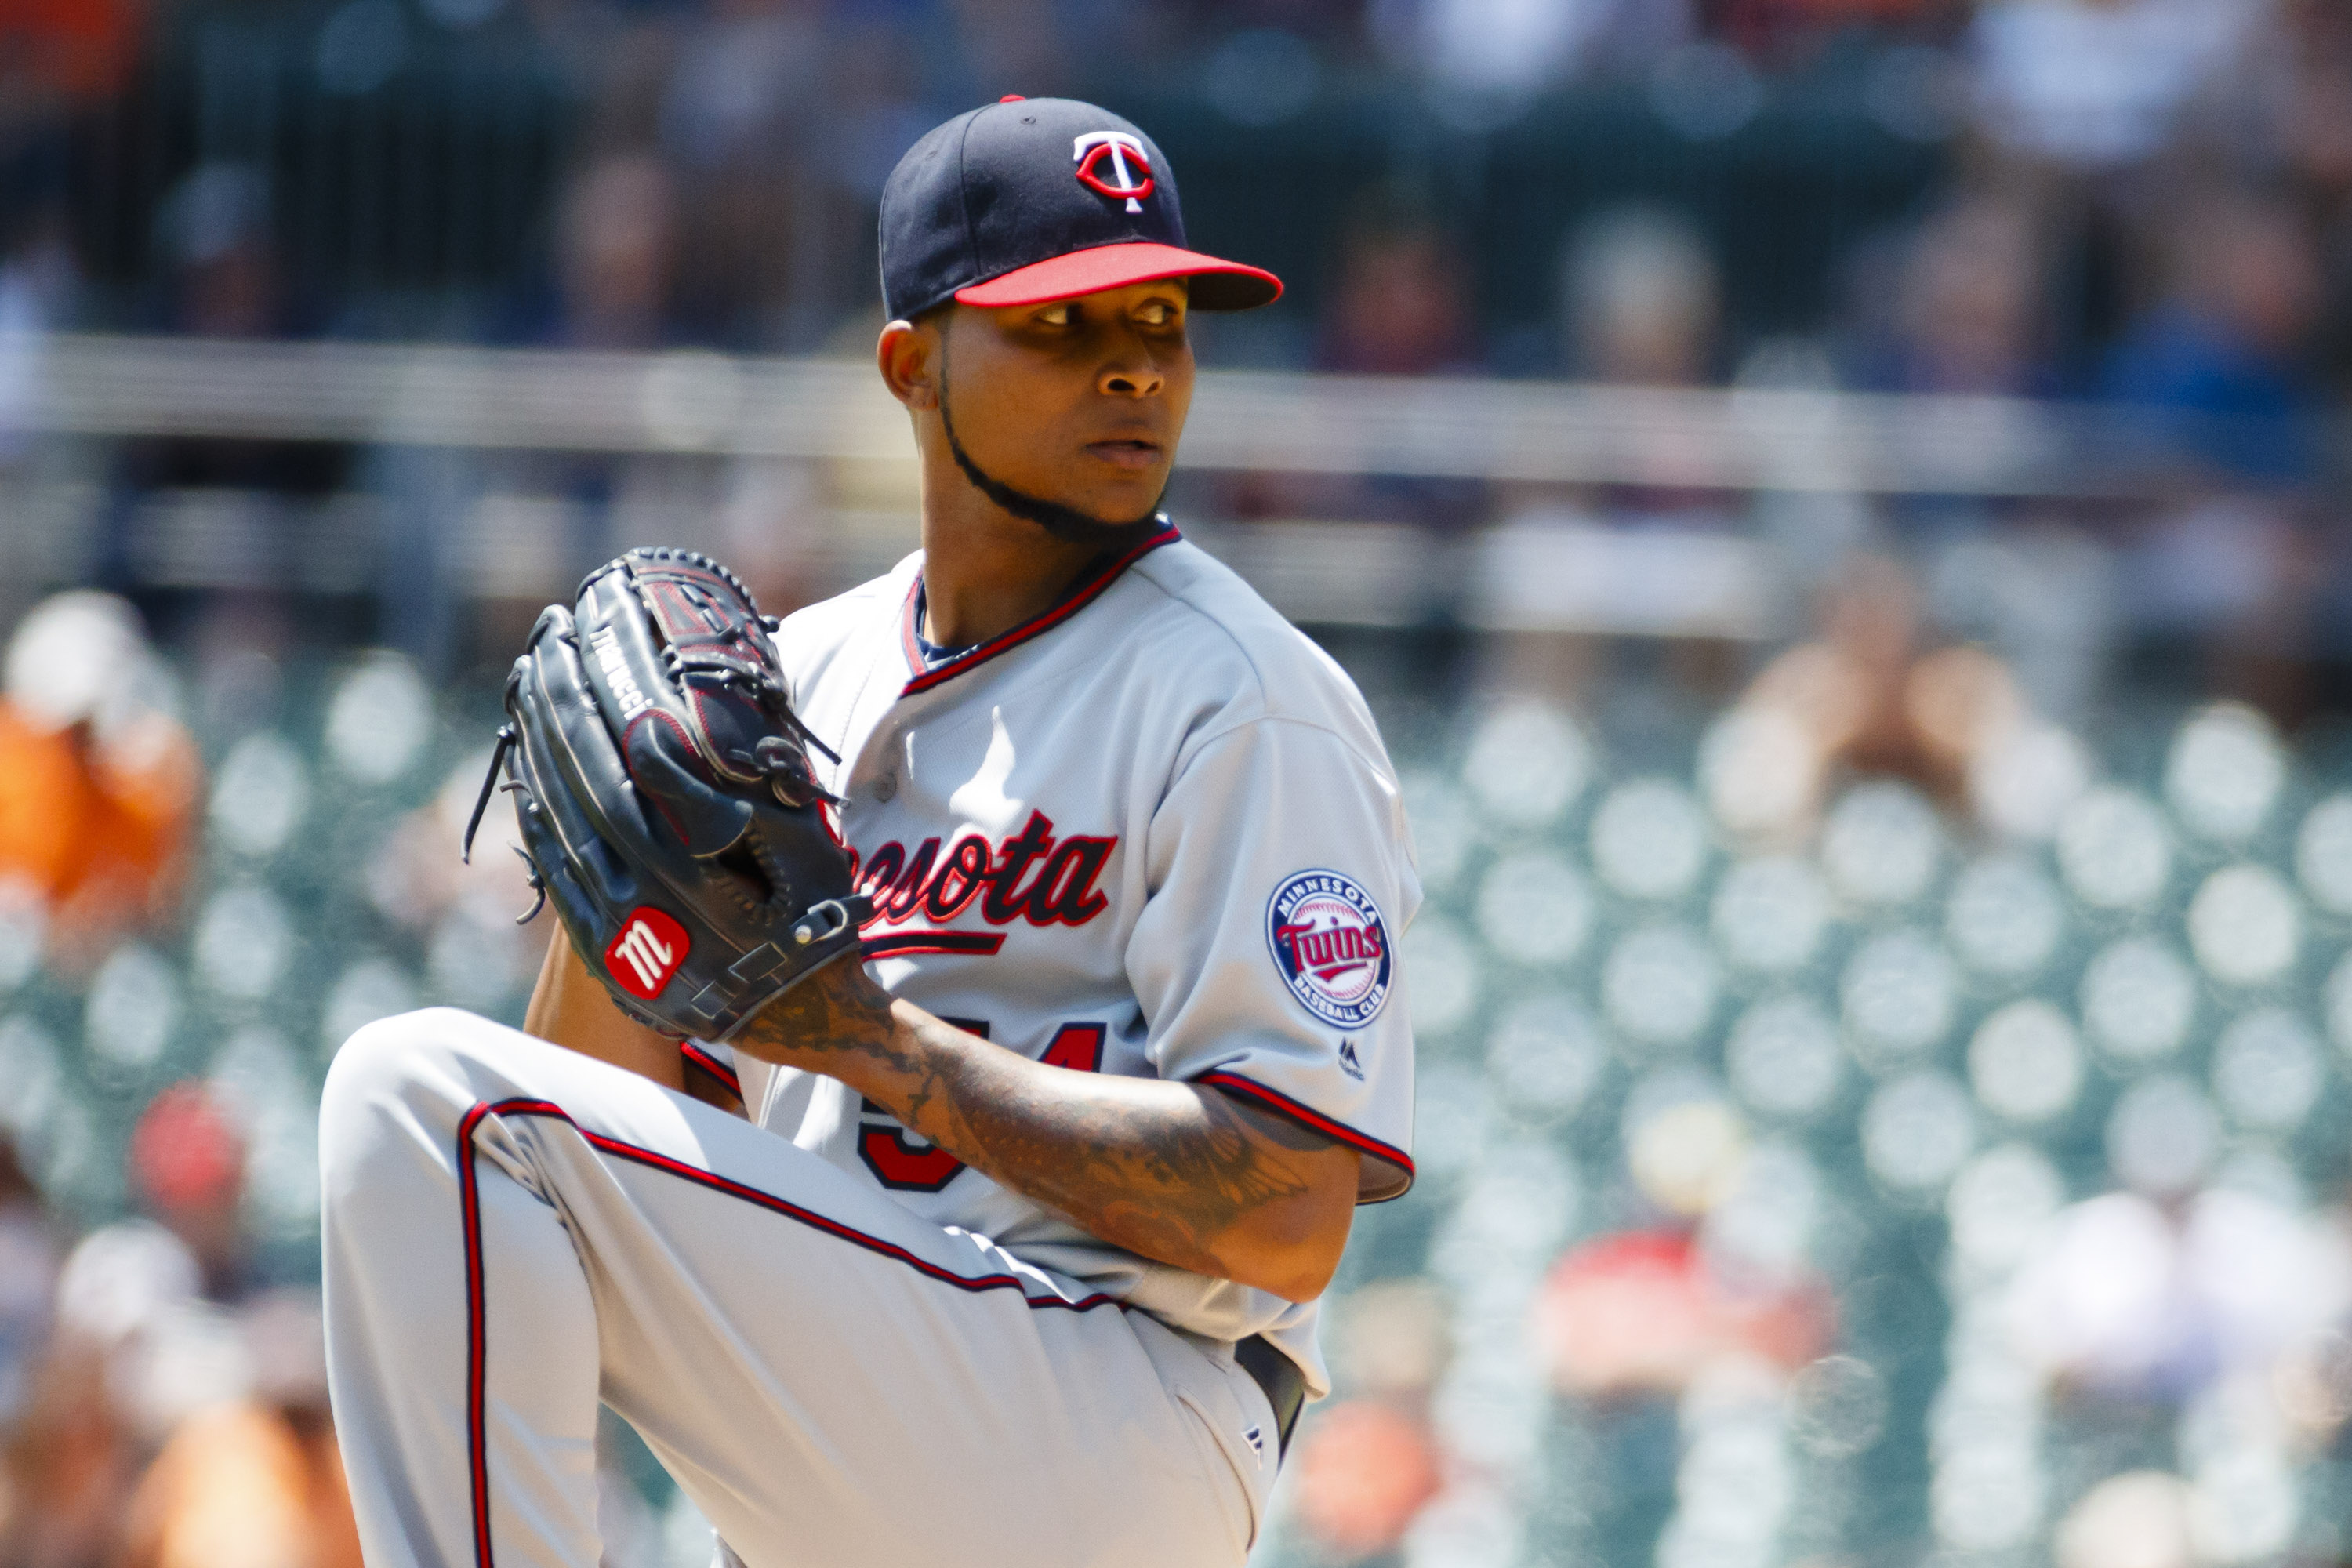 Over the last four seasons, Santana has featured a 95 ERA- and 98 FIP-.